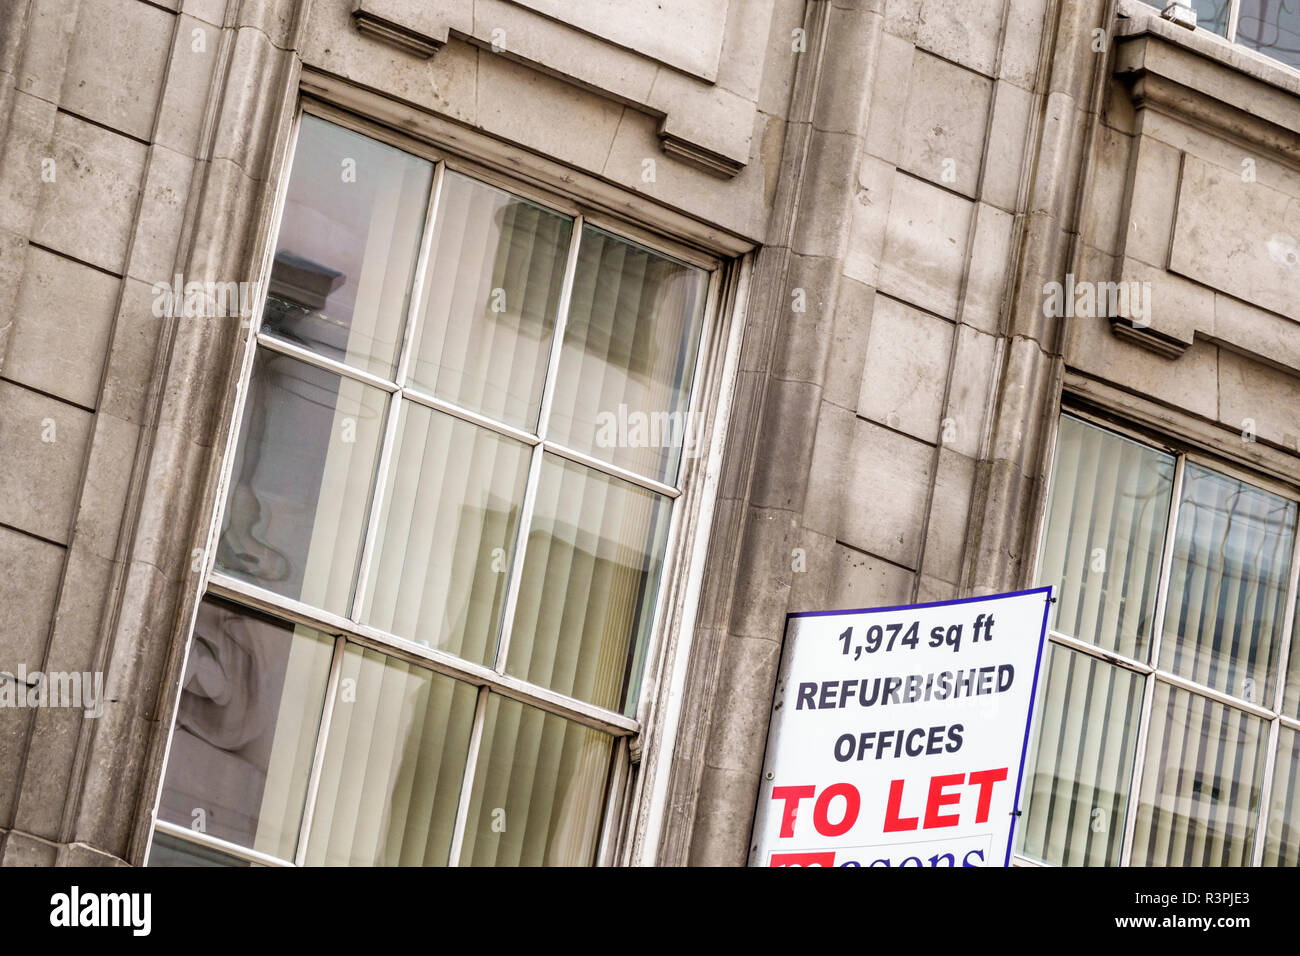 London England Great Britain United Kingdom City of London financial centre center Leadenhall Street office building exterior sign to let rent rental - Stock Image